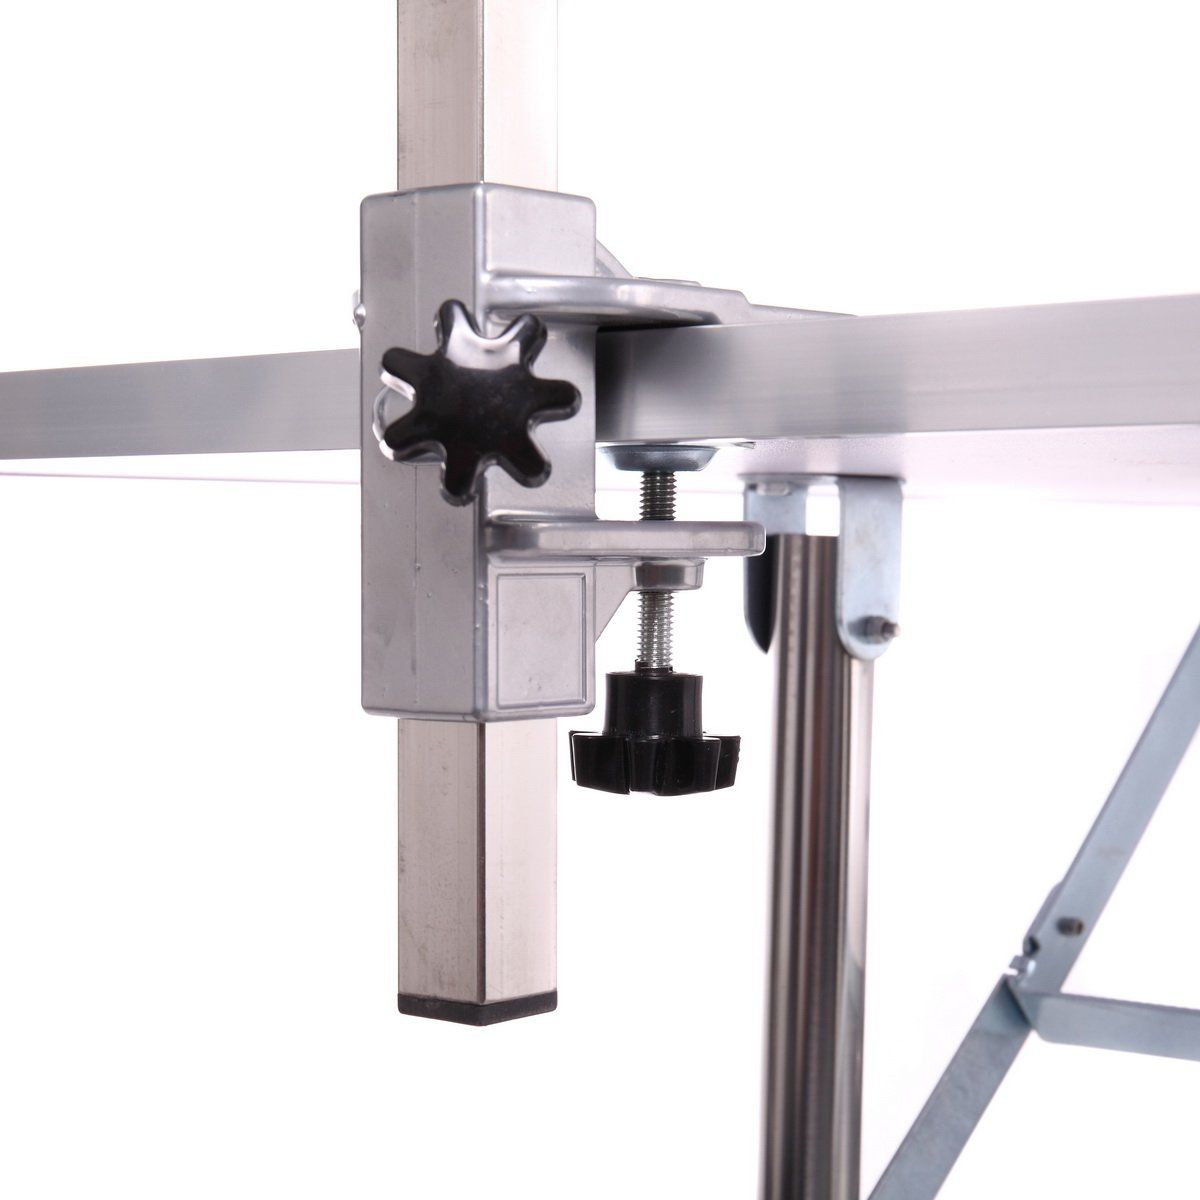 Dog grooming table adjustable arm and clamp for pet